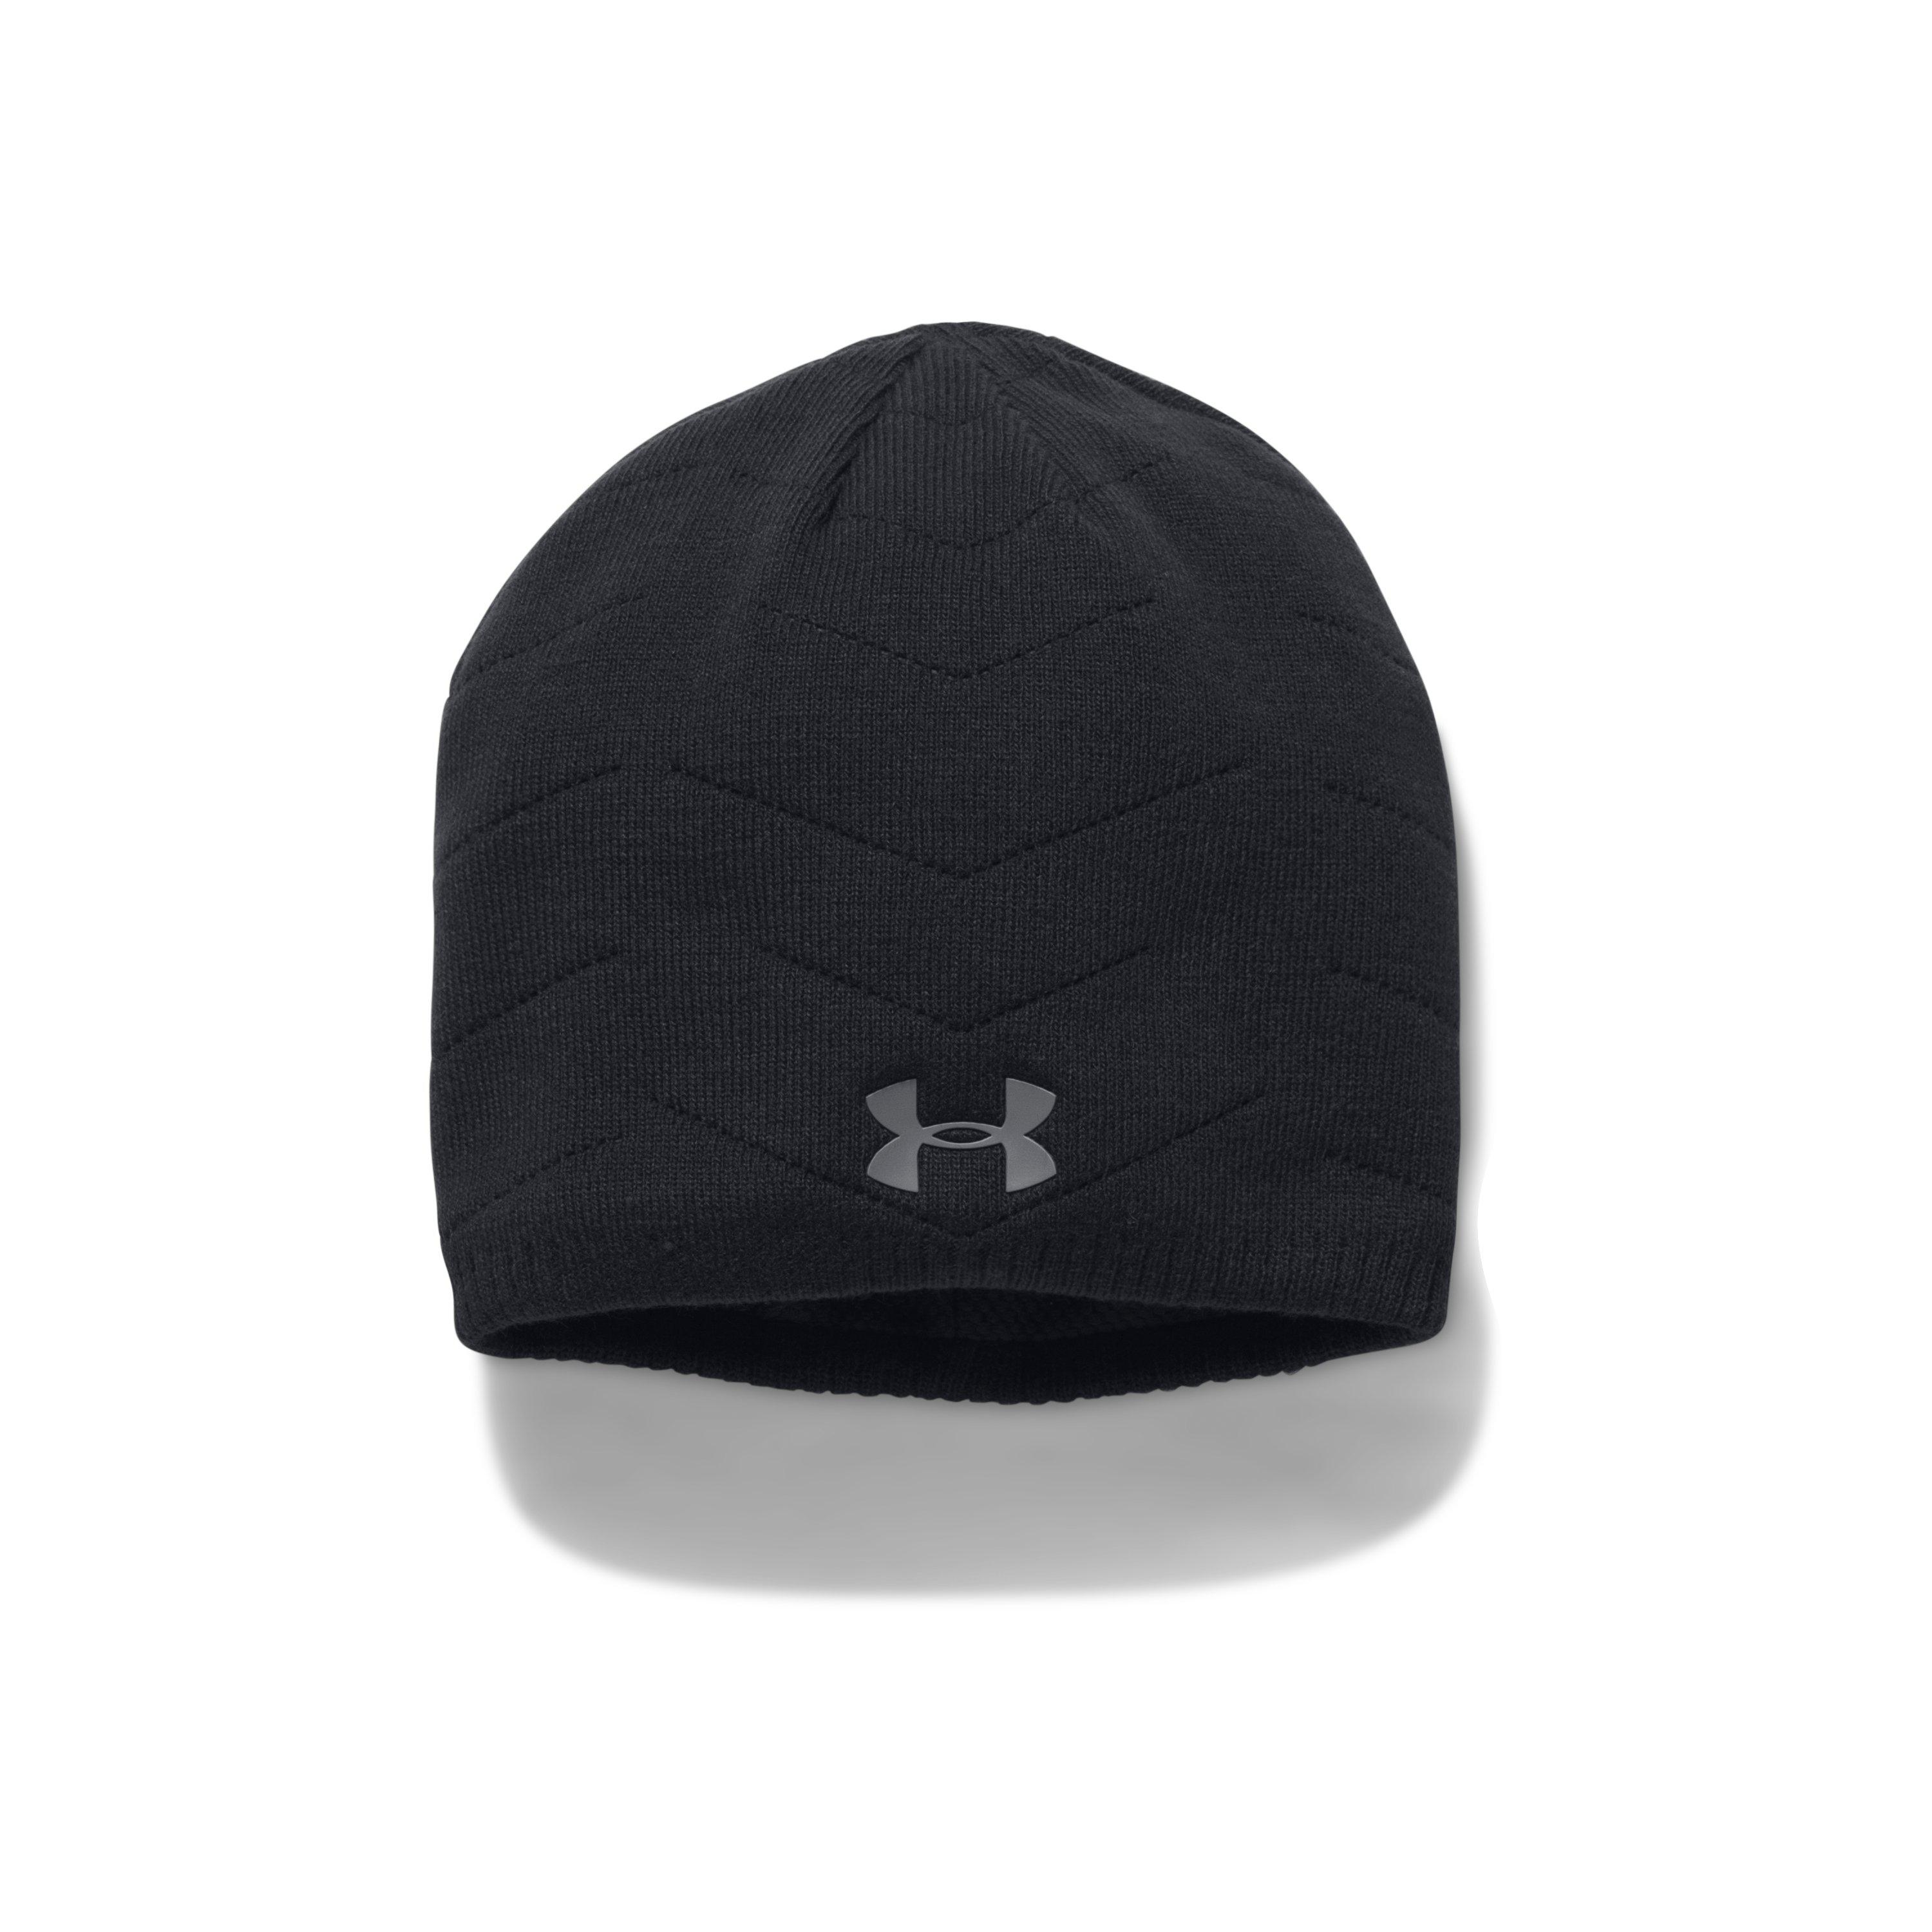 65a45f5f174 Lyst - Under Armour Men s Ua Knit Reactor Beanie in Black for Men